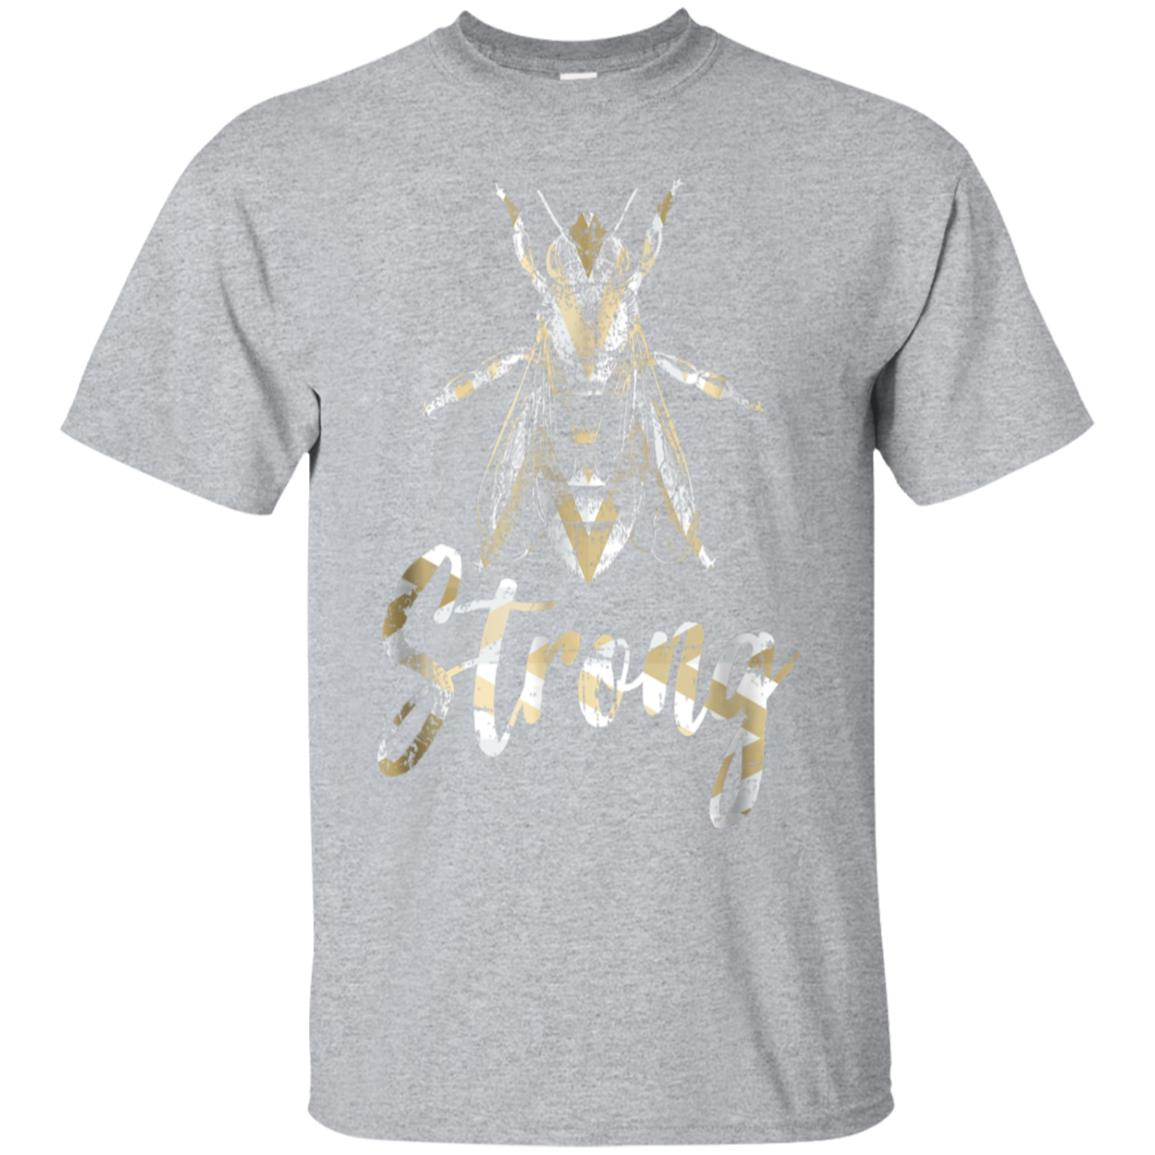 Bee Strong T-Shirt 99promocode